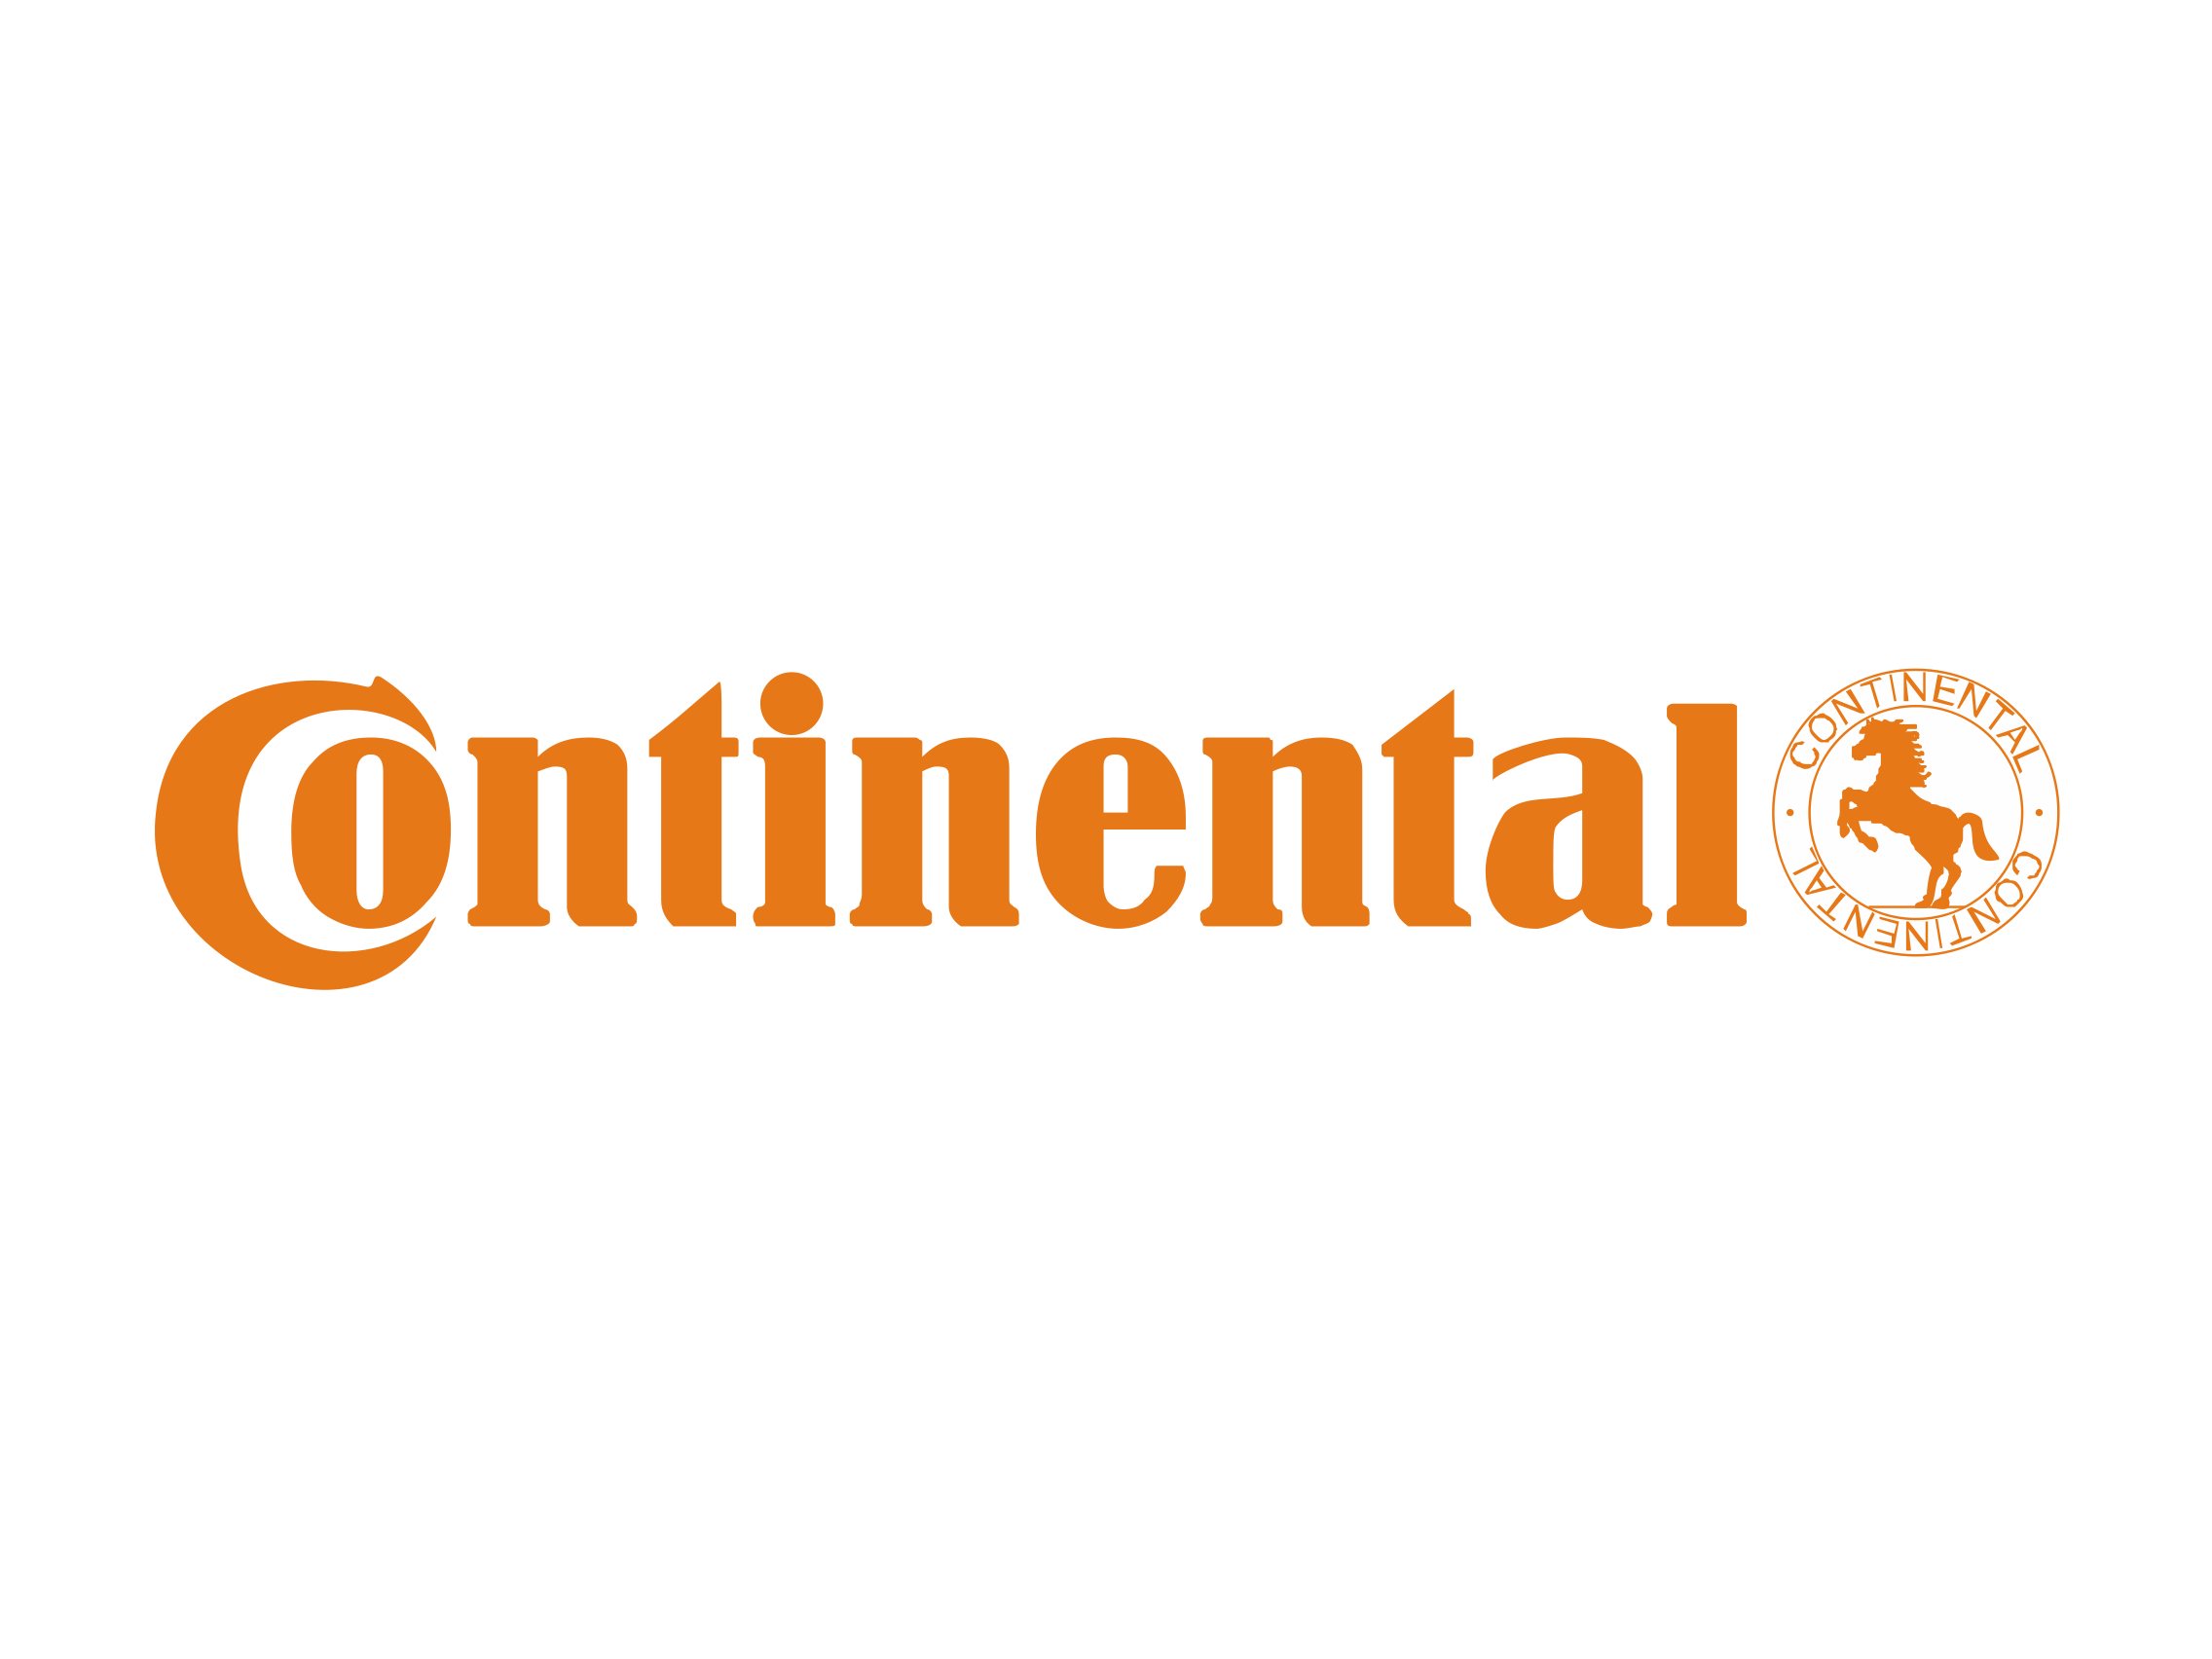 Continental Logo Wallpaper